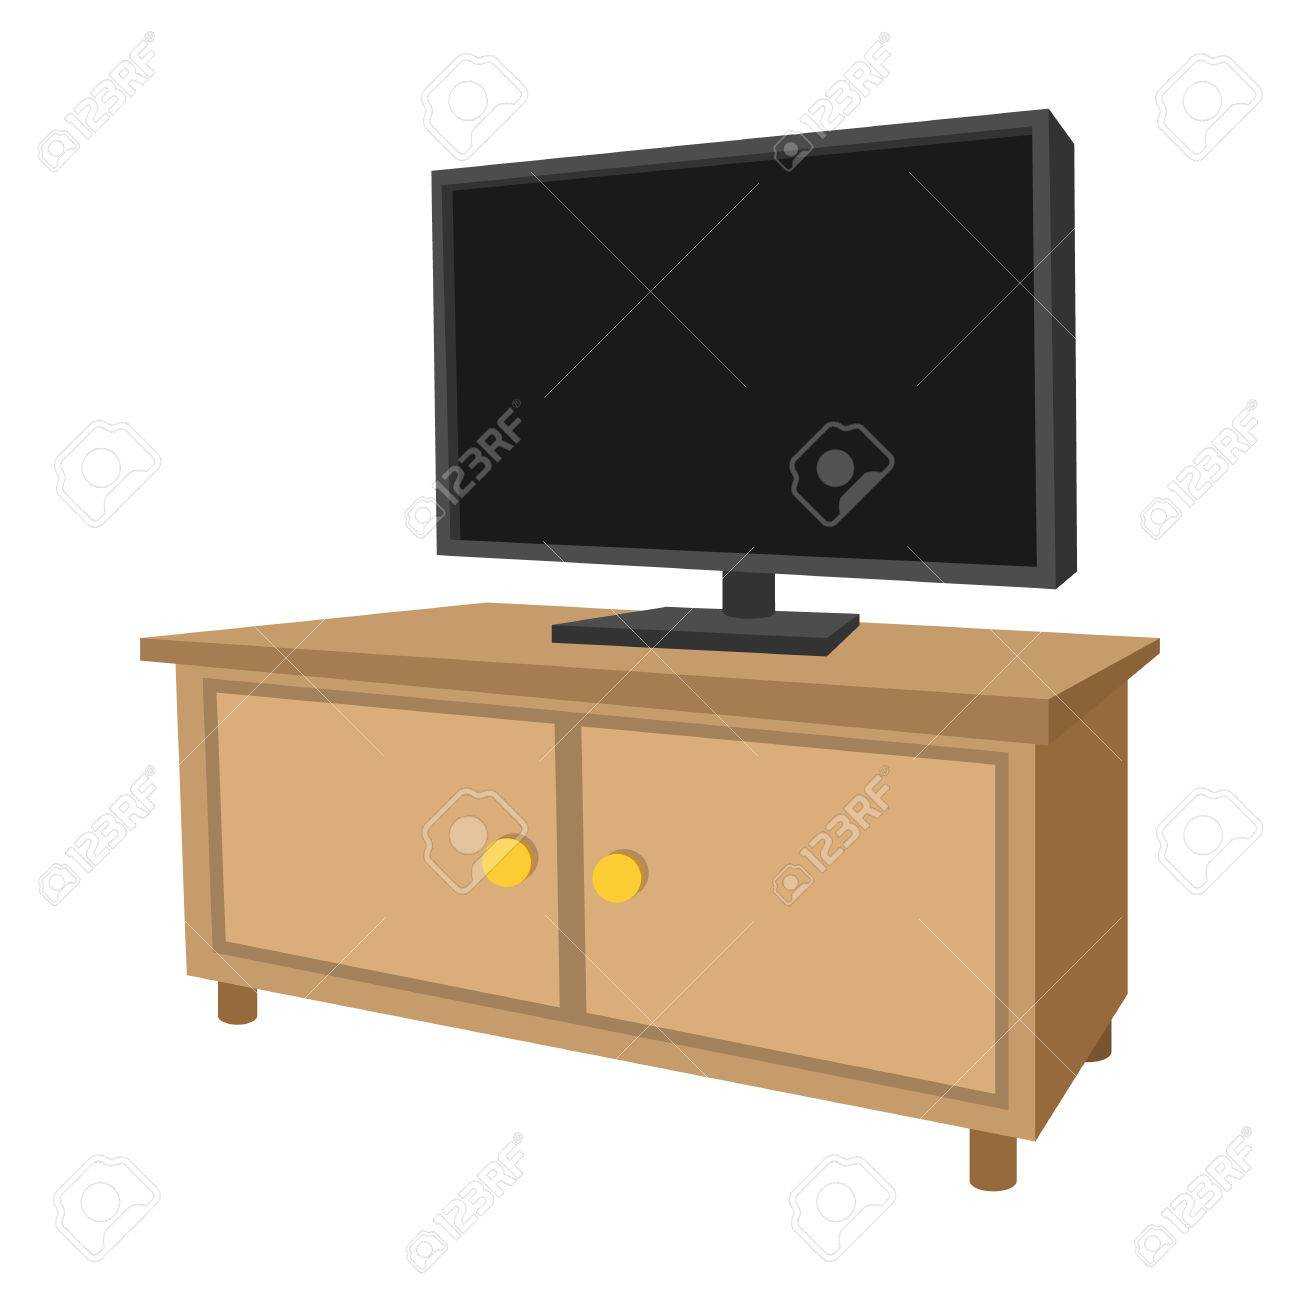 Cool Wooden Tv Cabinet With A Large Tv Cartoon Icon On A White Background Creativecarmelina Interior Chair Design Creativecarmelinacom